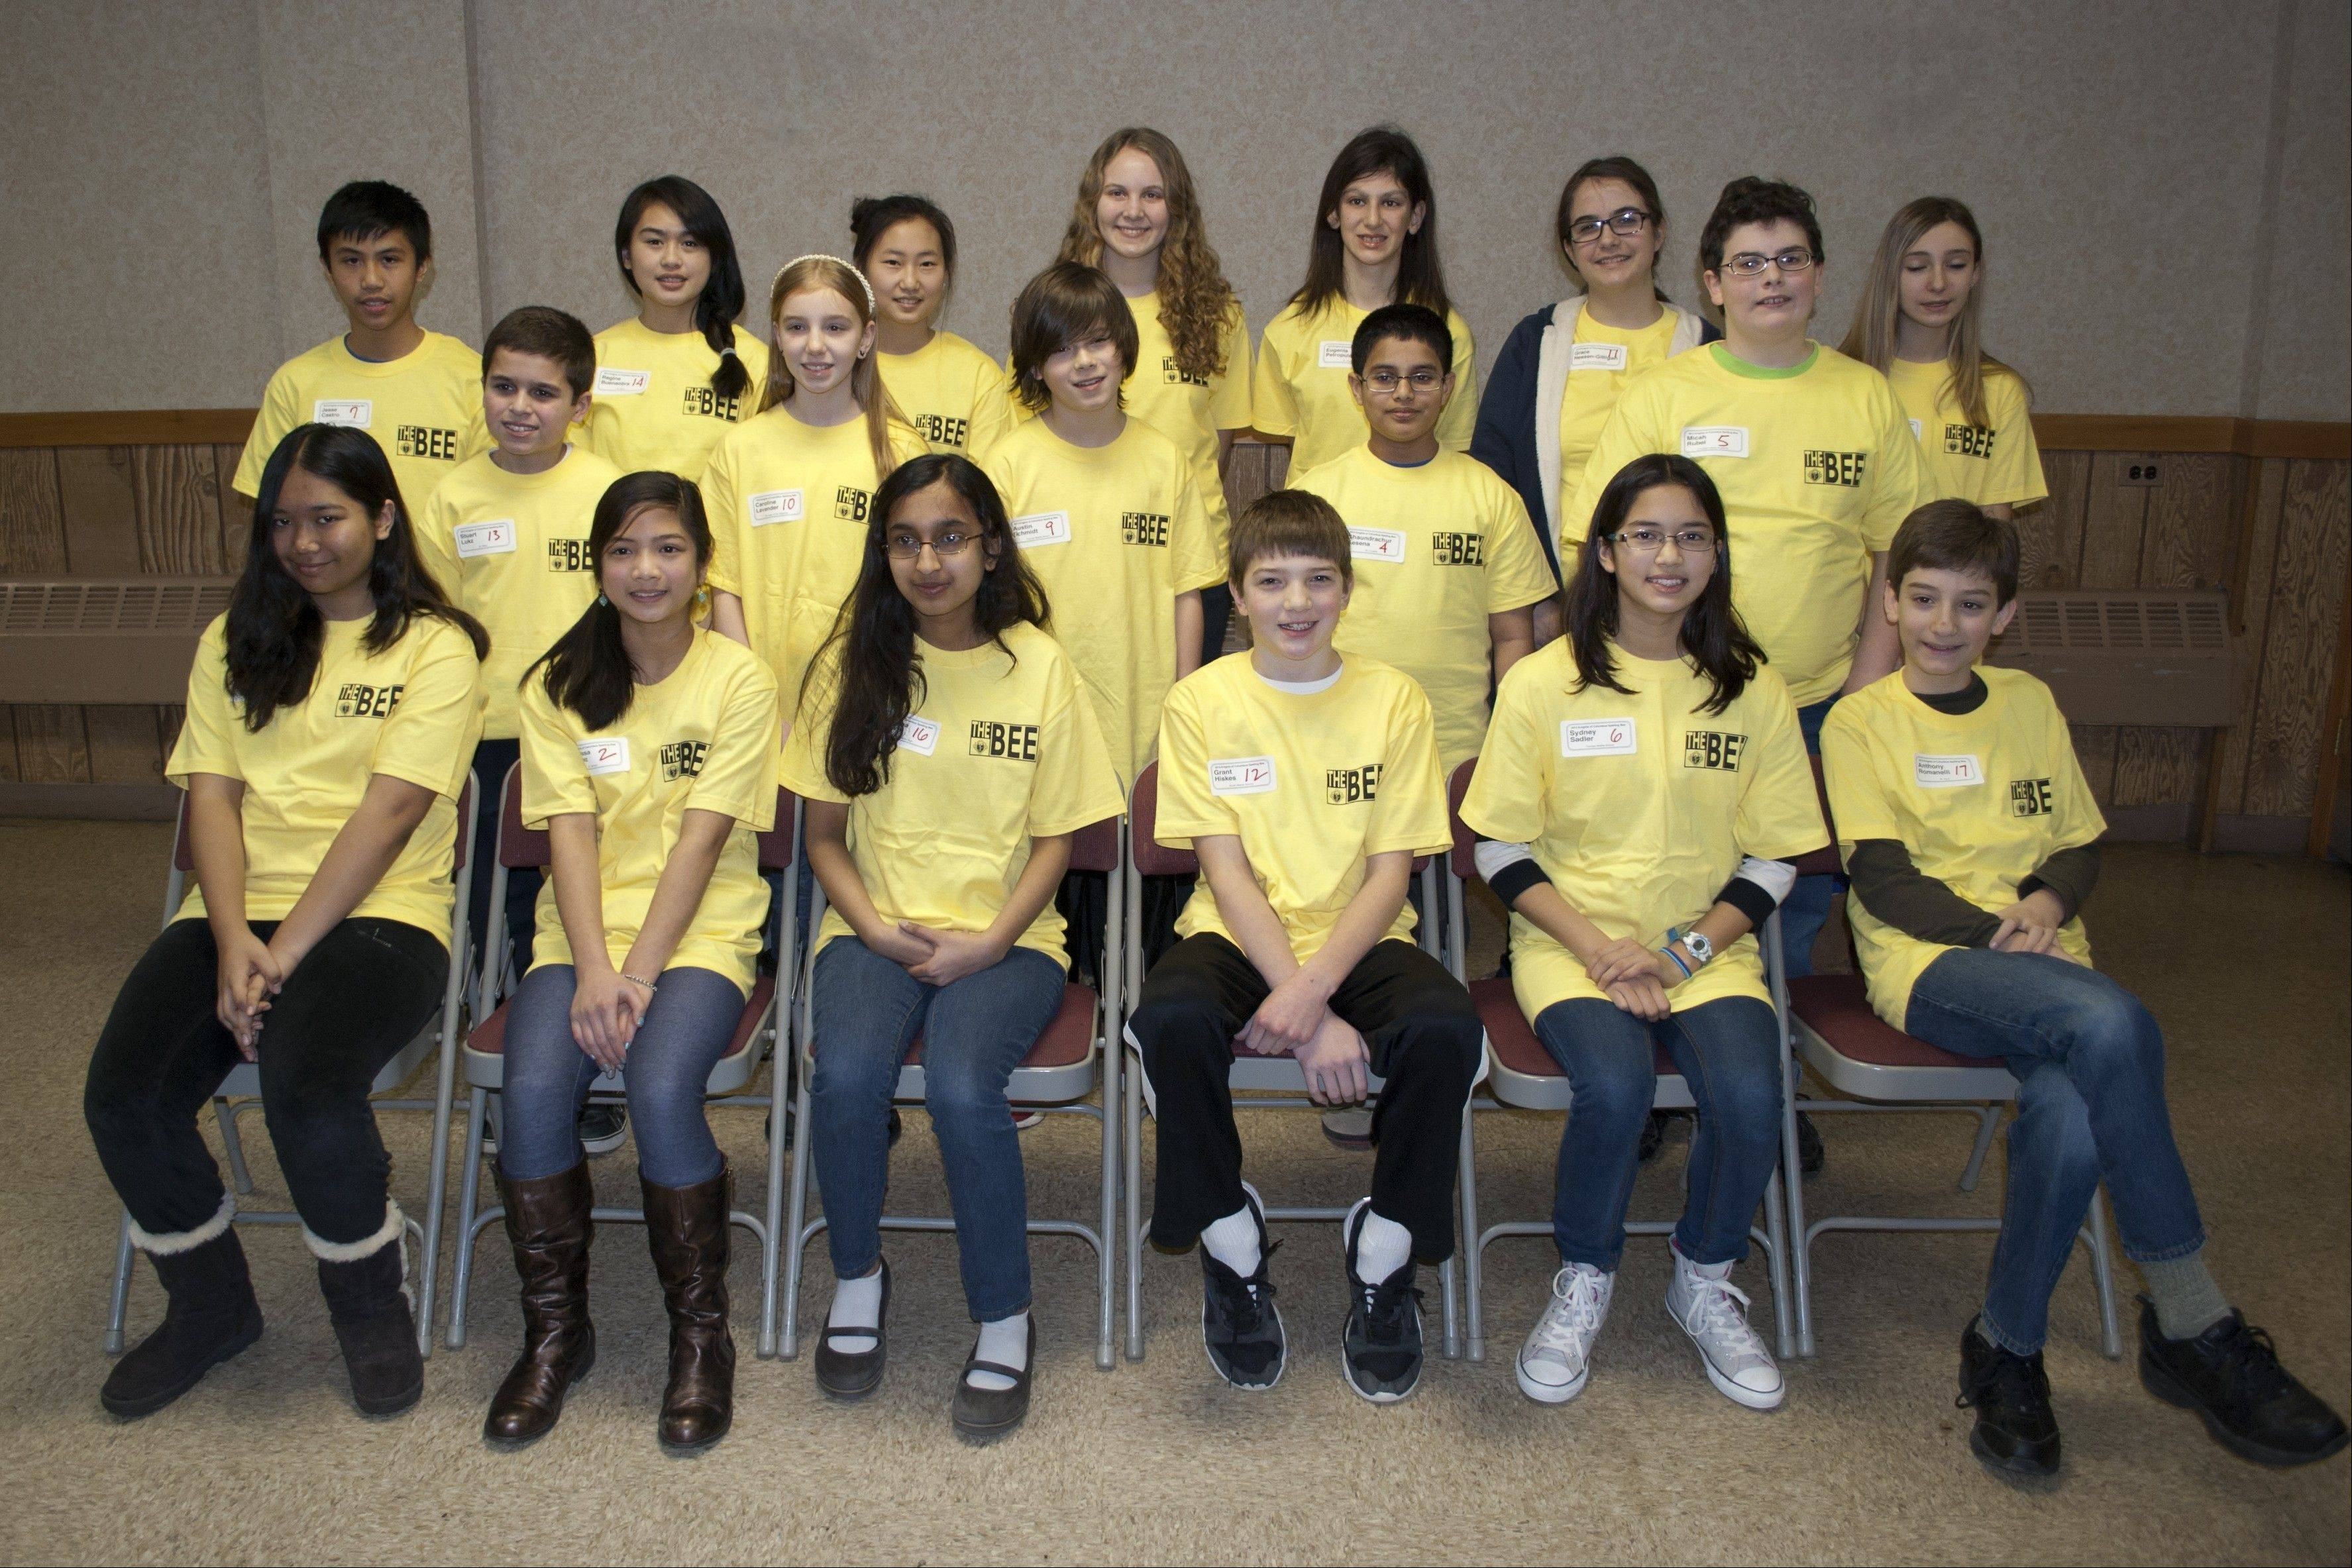 Participants of the 31st annual Knights of Columbus Spelling Bee, from left are: Front row:Erica Hong, Clarissa Gomez, Susanna D'Silva, Grant Hiskes, Sydney Sadler and Anthony Romanelli; second row: Stuart Lukz, Caroline Lavender, Austin Schmidt, Chandrachur Kesana and Micah Rubel; back row: Jesse Castro, Regine Buenaobra, Lindsey Lee, Meredith Nowotarski, Eugenia Petropulos, Grace Nessen-Gilligan and Jessica Davis.